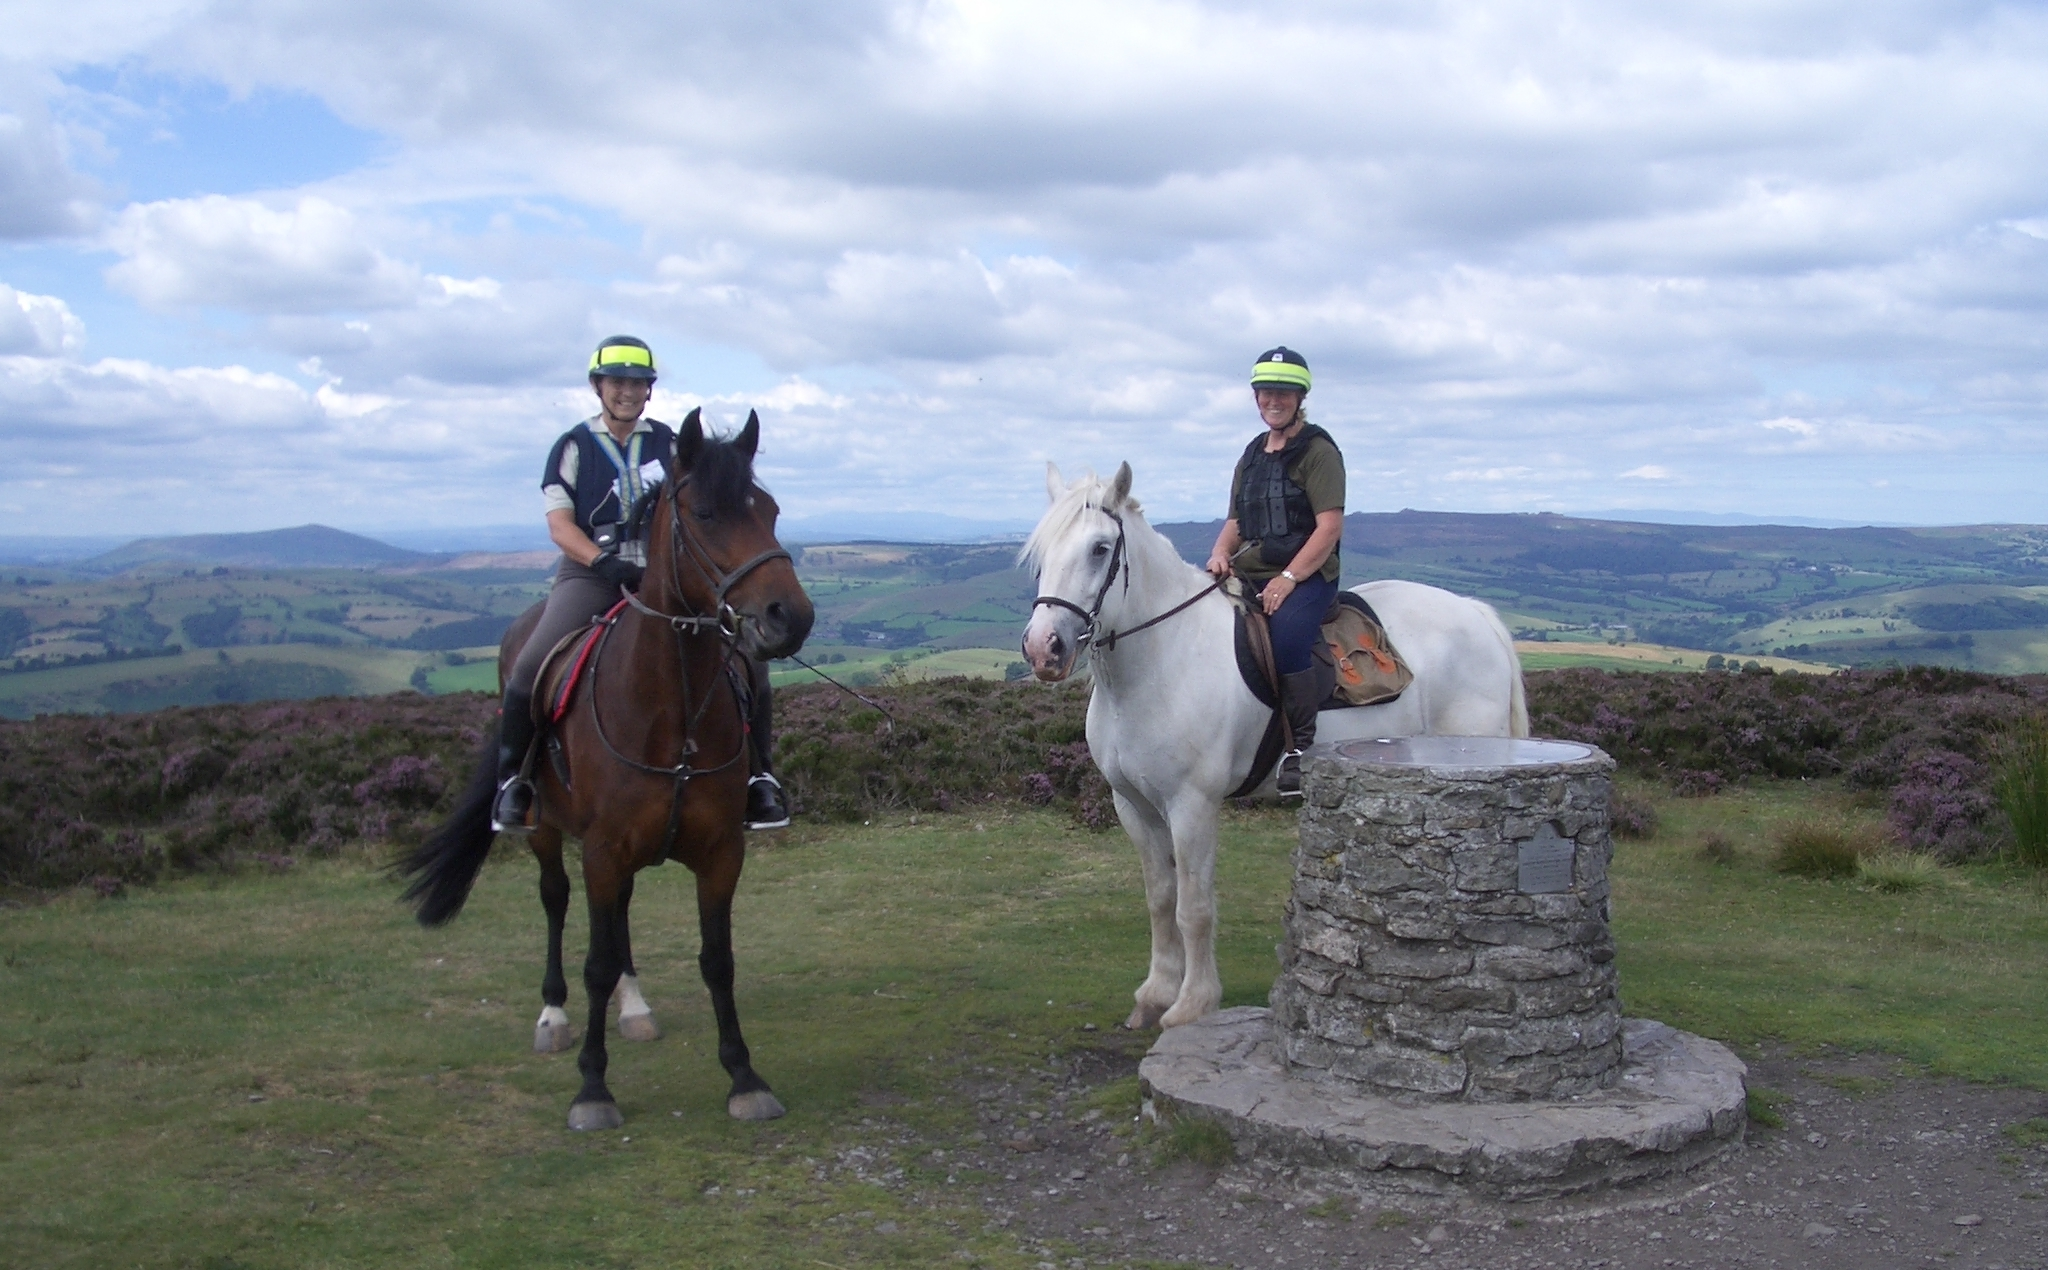 2 horse riders on Portway